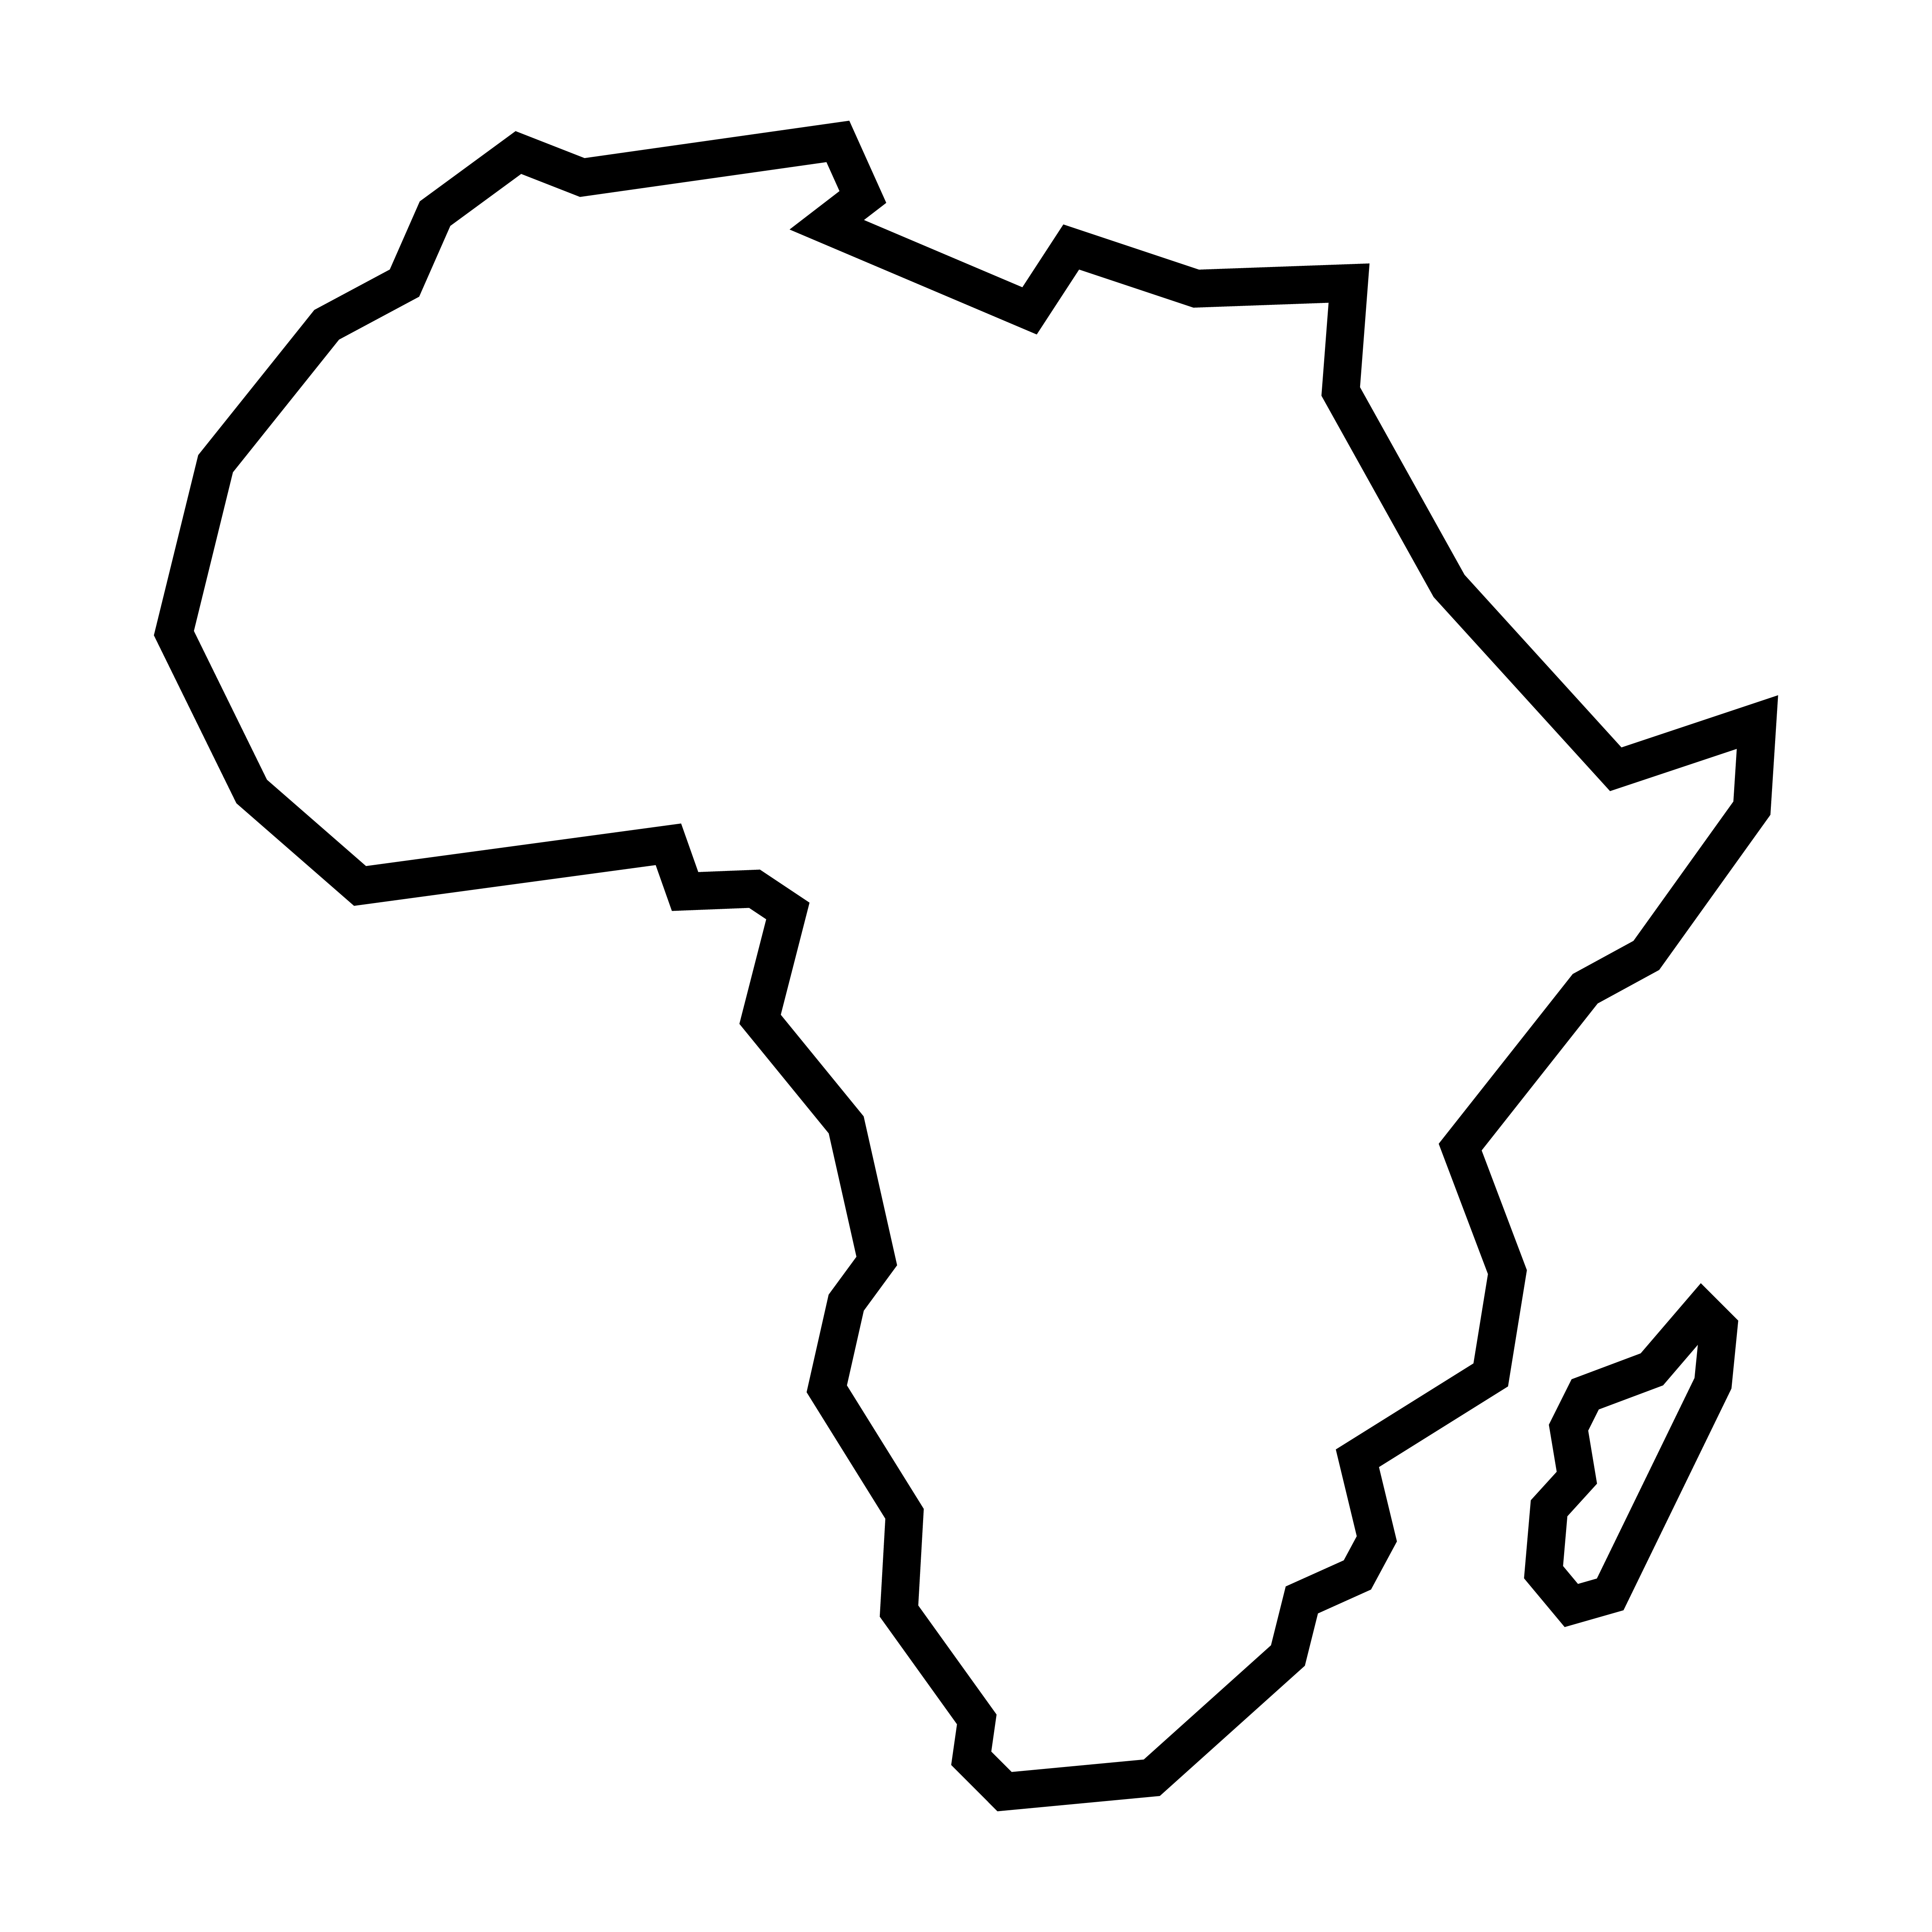 map of africa printable black and white africa clipart map africa map transparent free for map and printable of black white africa